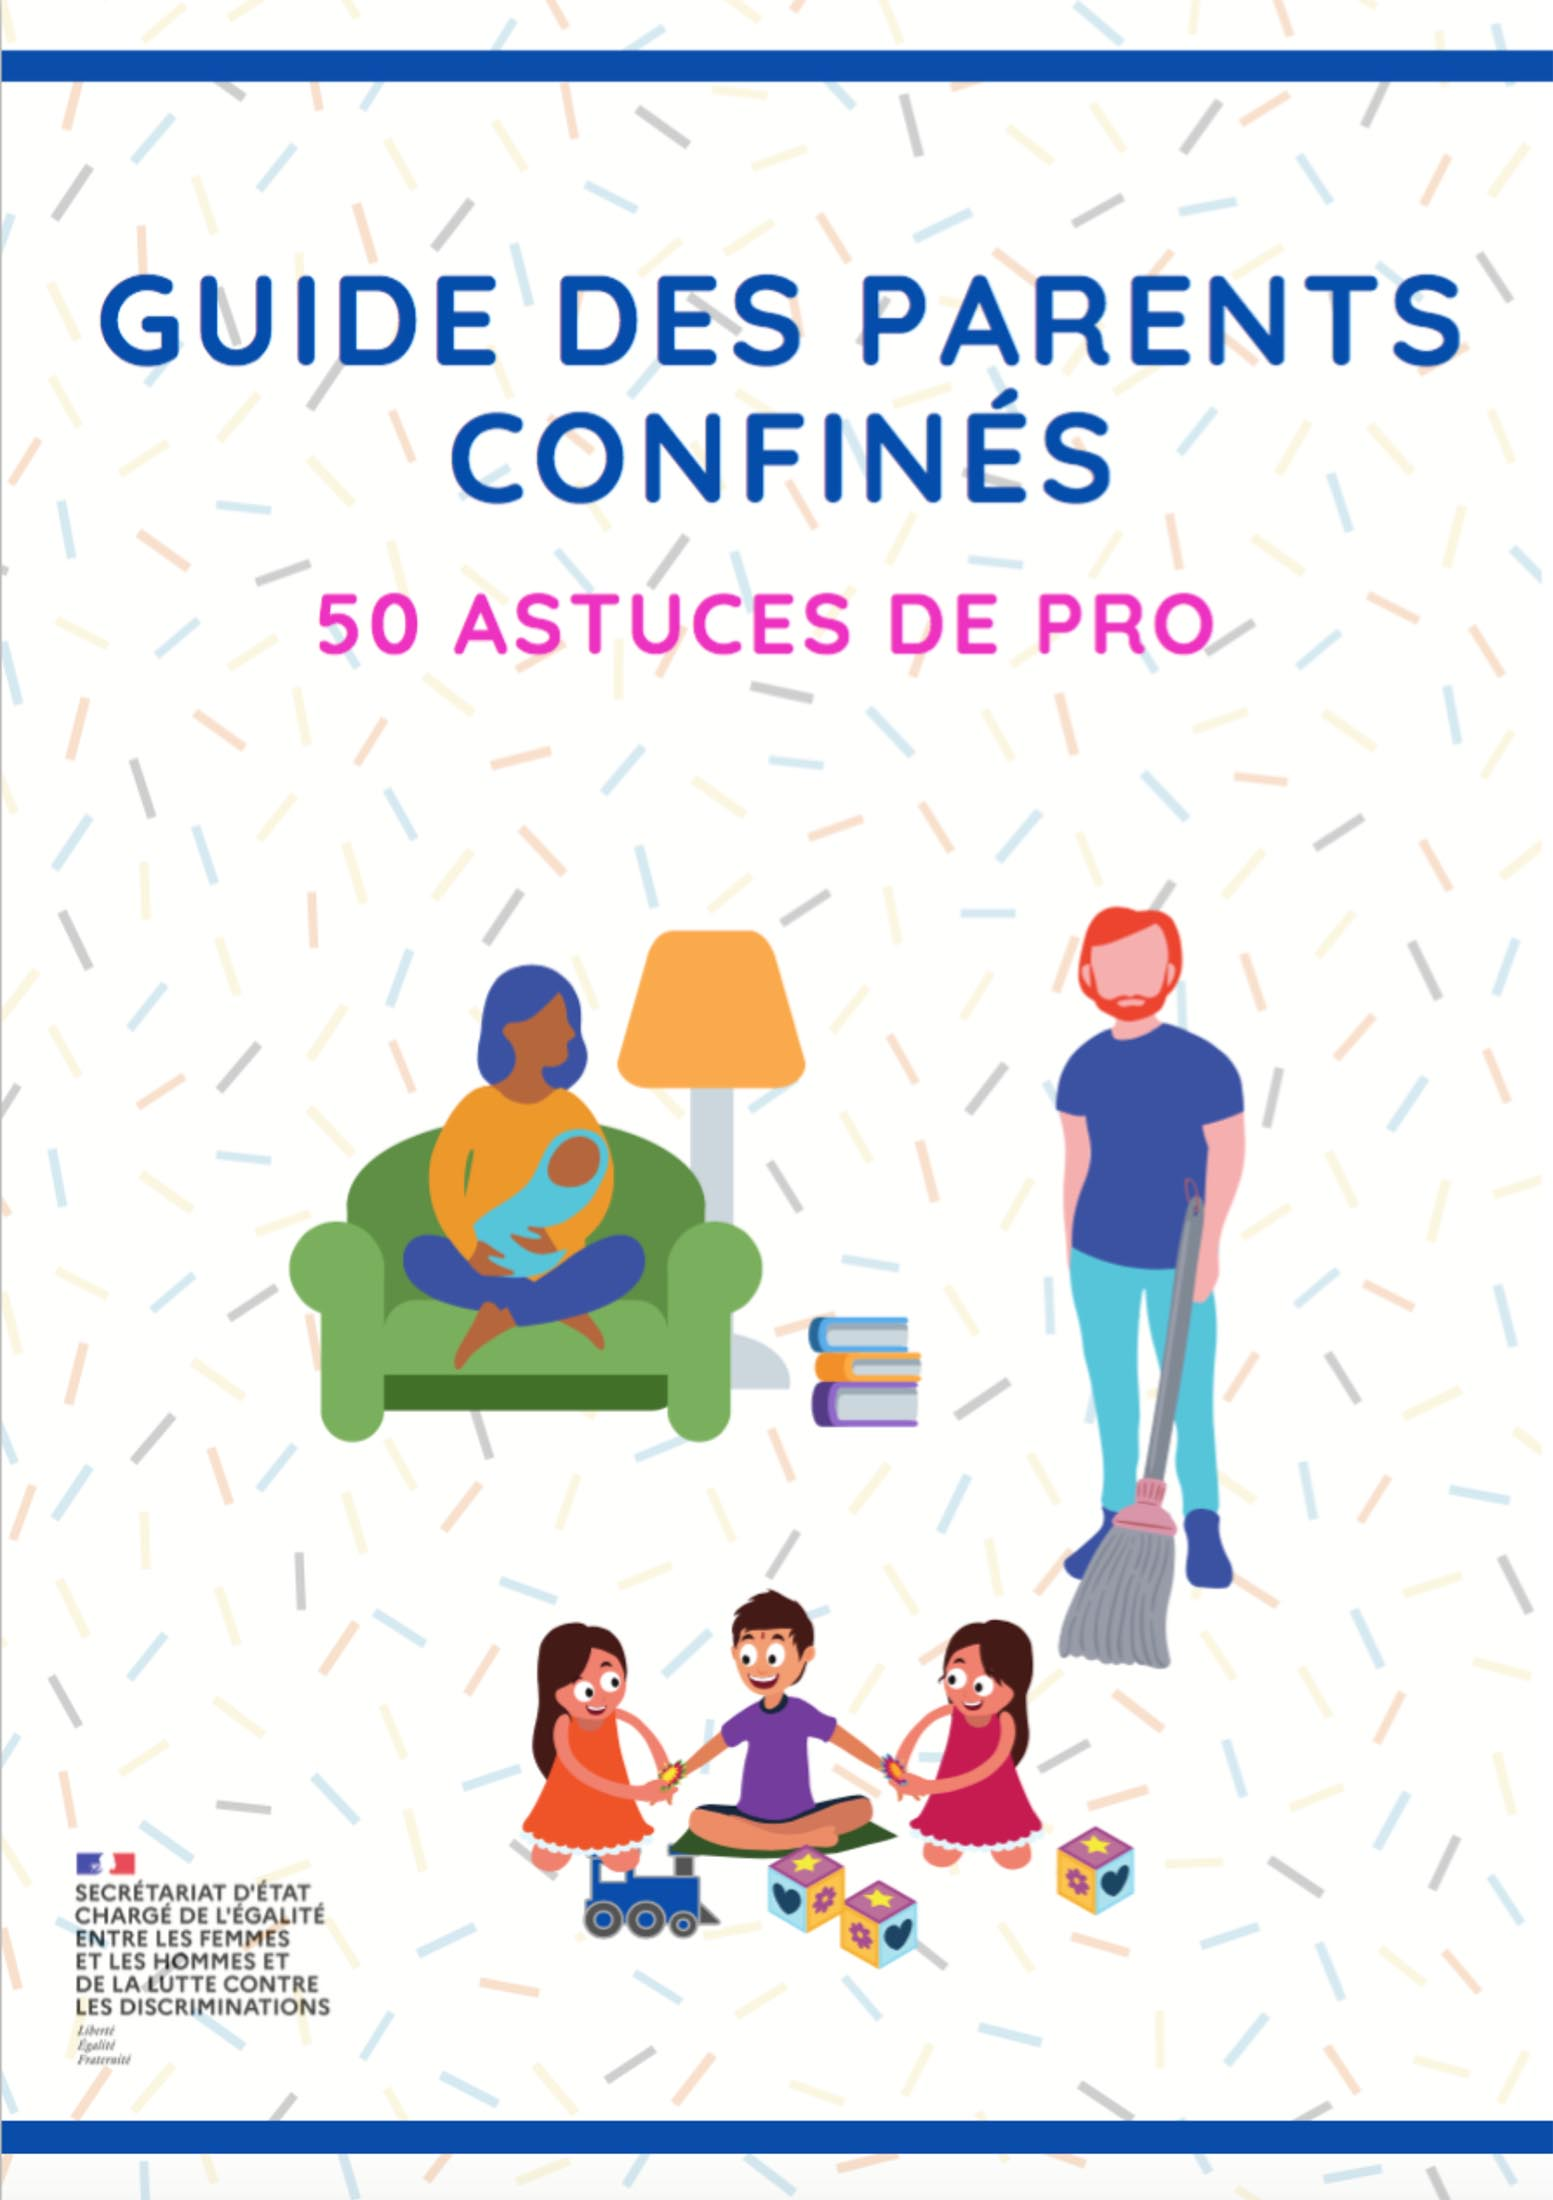 Guide des parents confinés - 50 astuces de pro